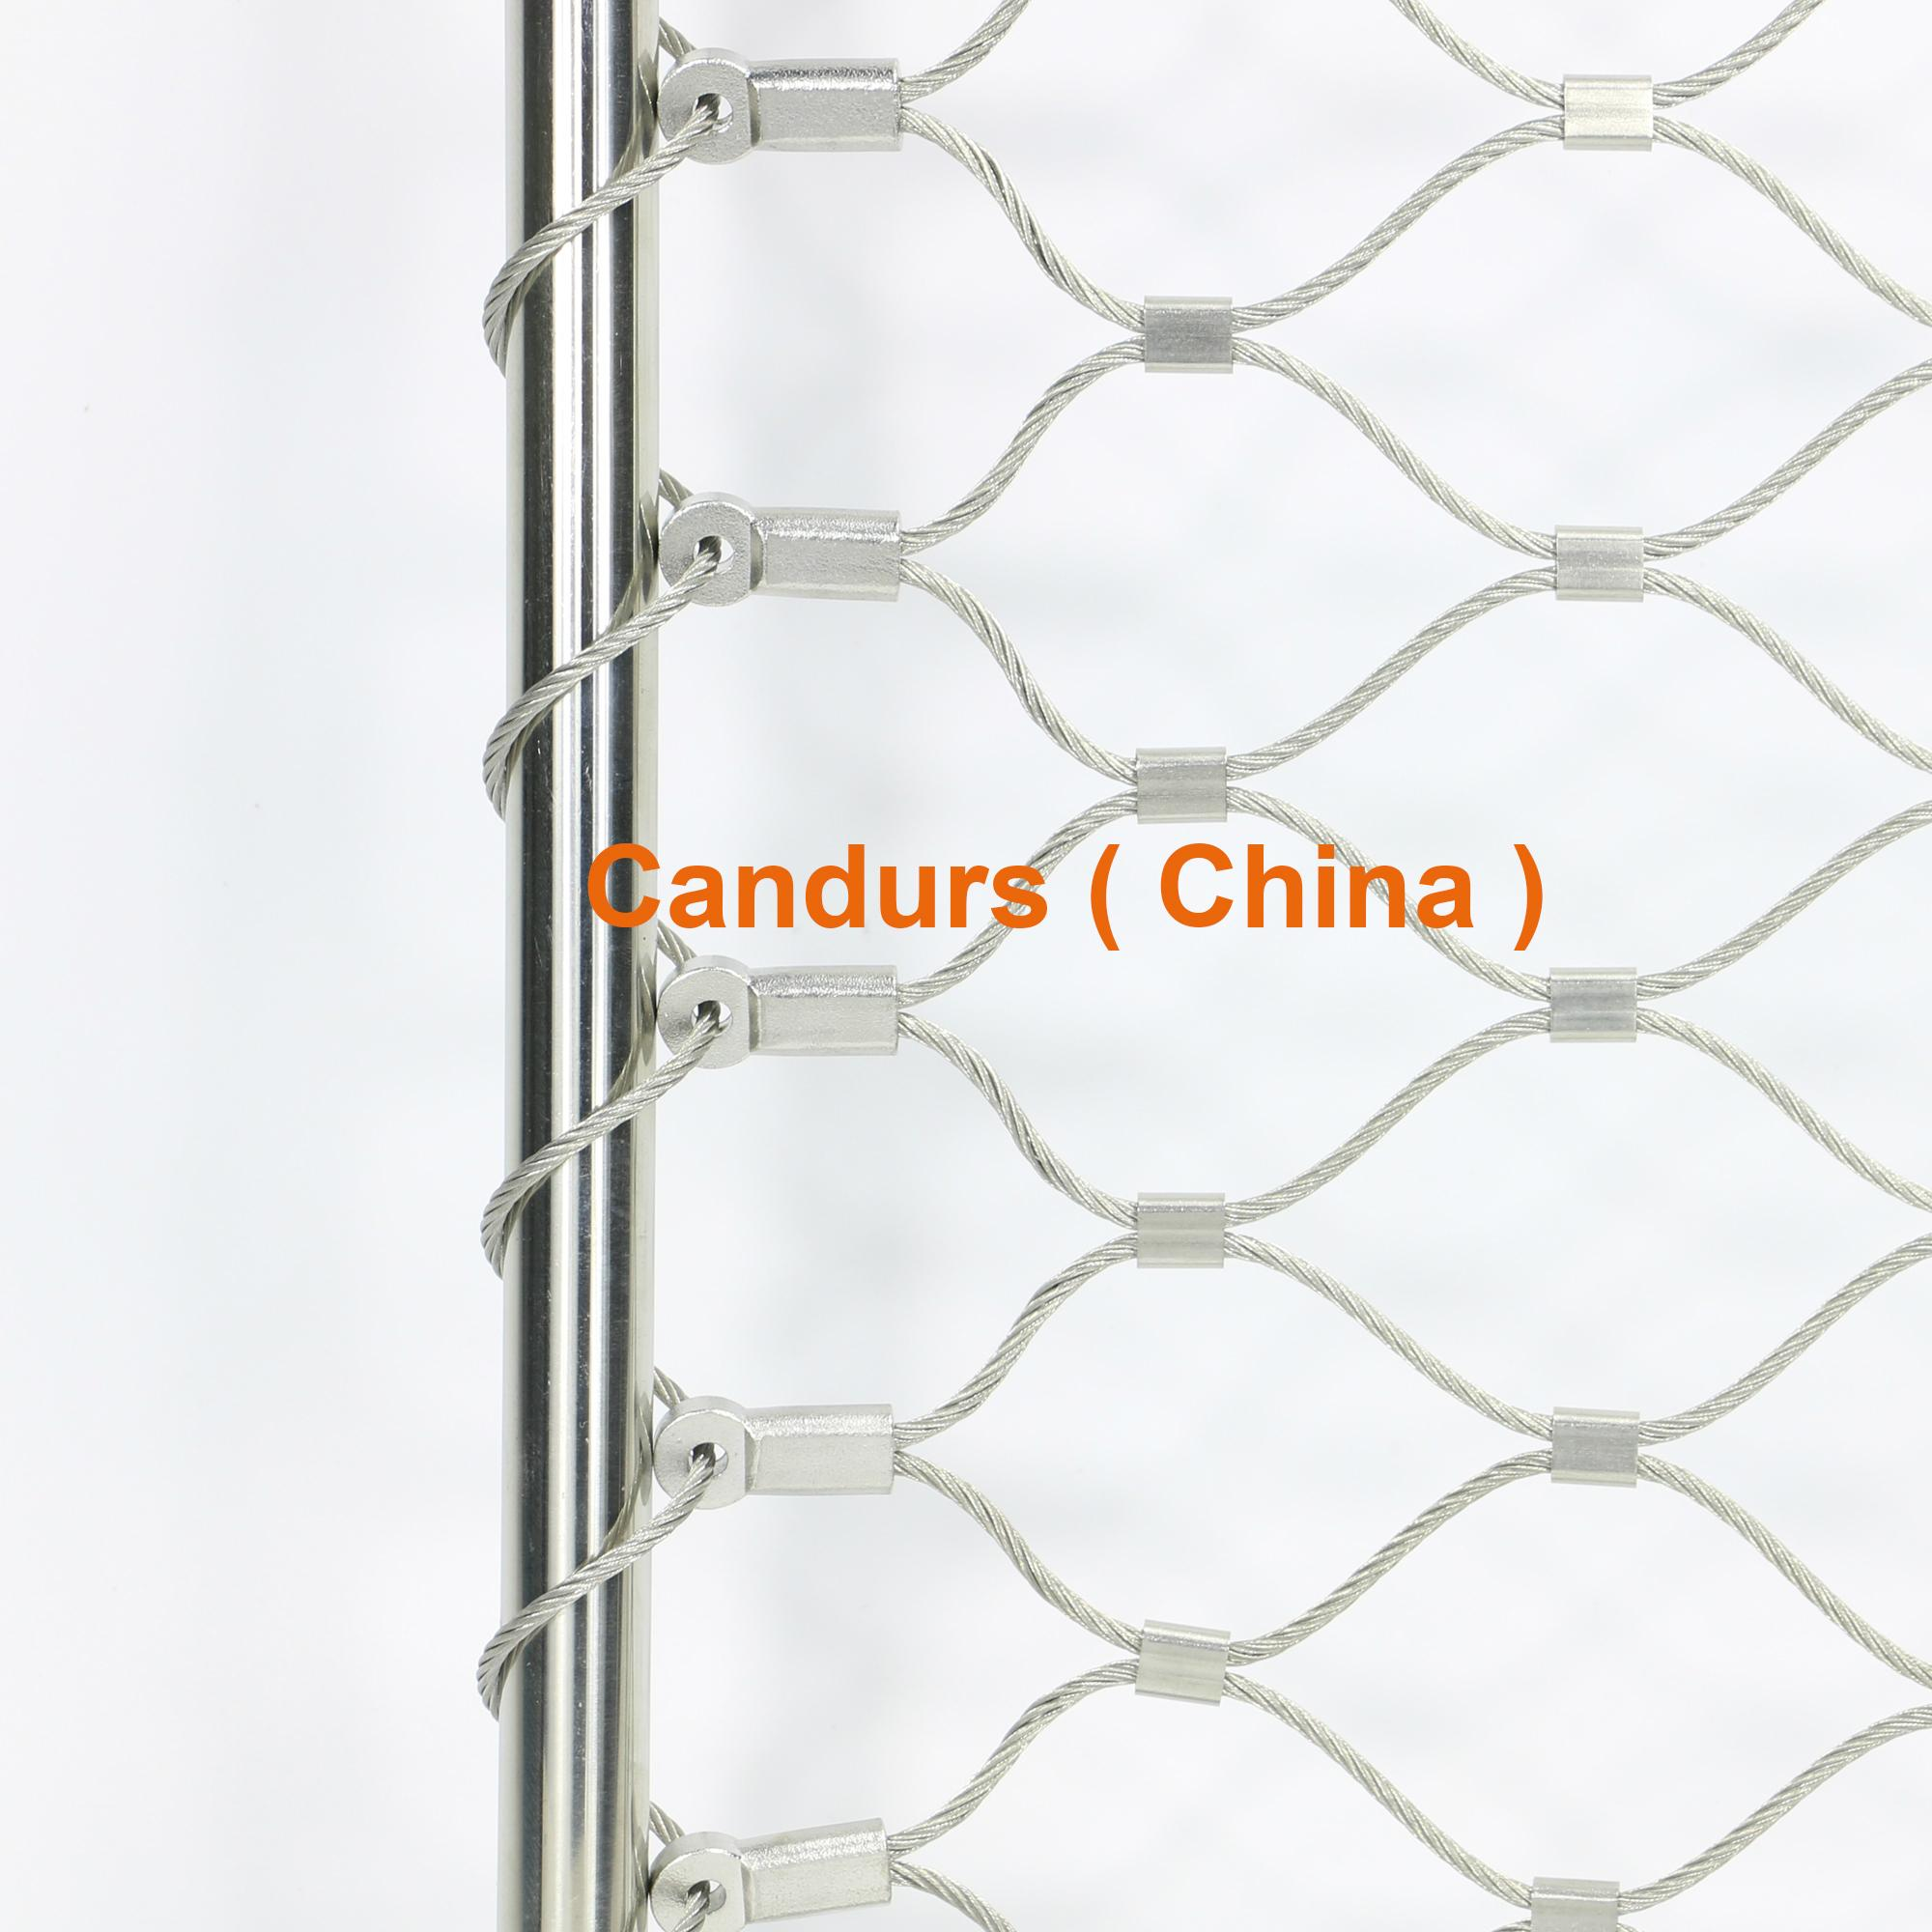 Diamond ferruled stainless steel wire rope cable handrail